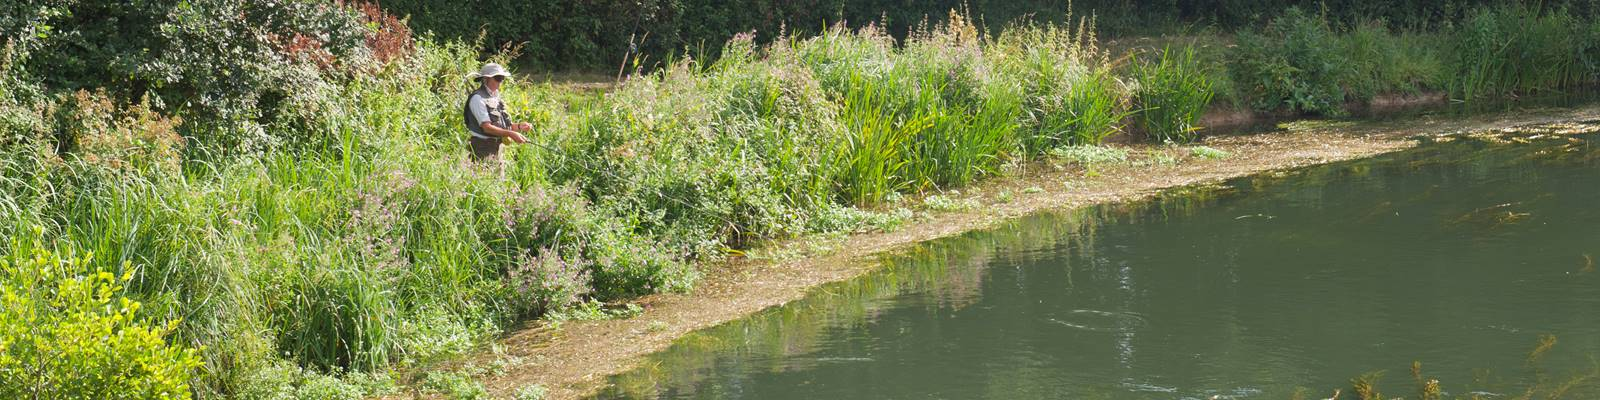 Itchen_Valley_Country_Park161.jpg (1)